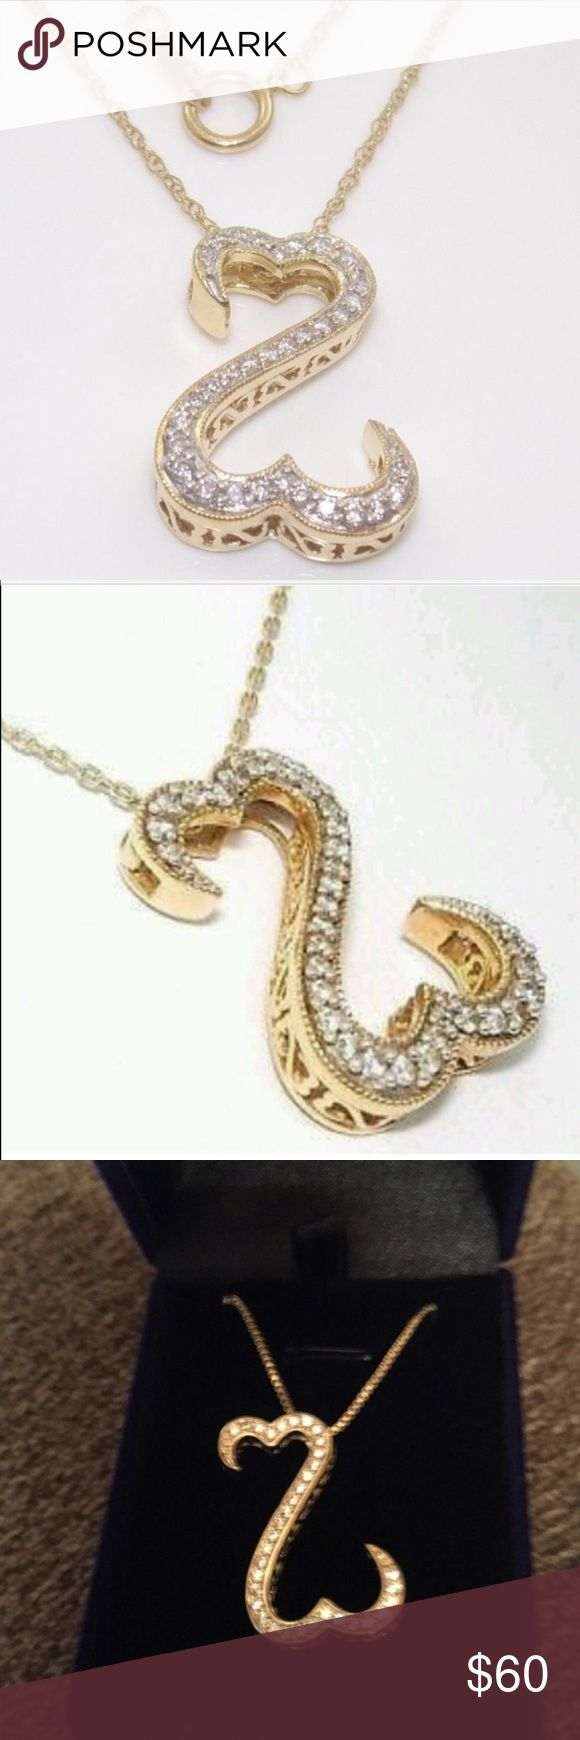 """OPEN HEART PENDANT SND CHSIN NEW OPEN HEART PENDANT AND BOX CHAIN AAAA CLEAR. CZ MEASURES APPROX 2"""" 14K YELLOW GOLD PLATING OVER STAINLESS STEEL ADJUSTABLE BOX CHAIN IS APPROX 16-20"""" includes velvet gift box Jewelry Necklaces"""